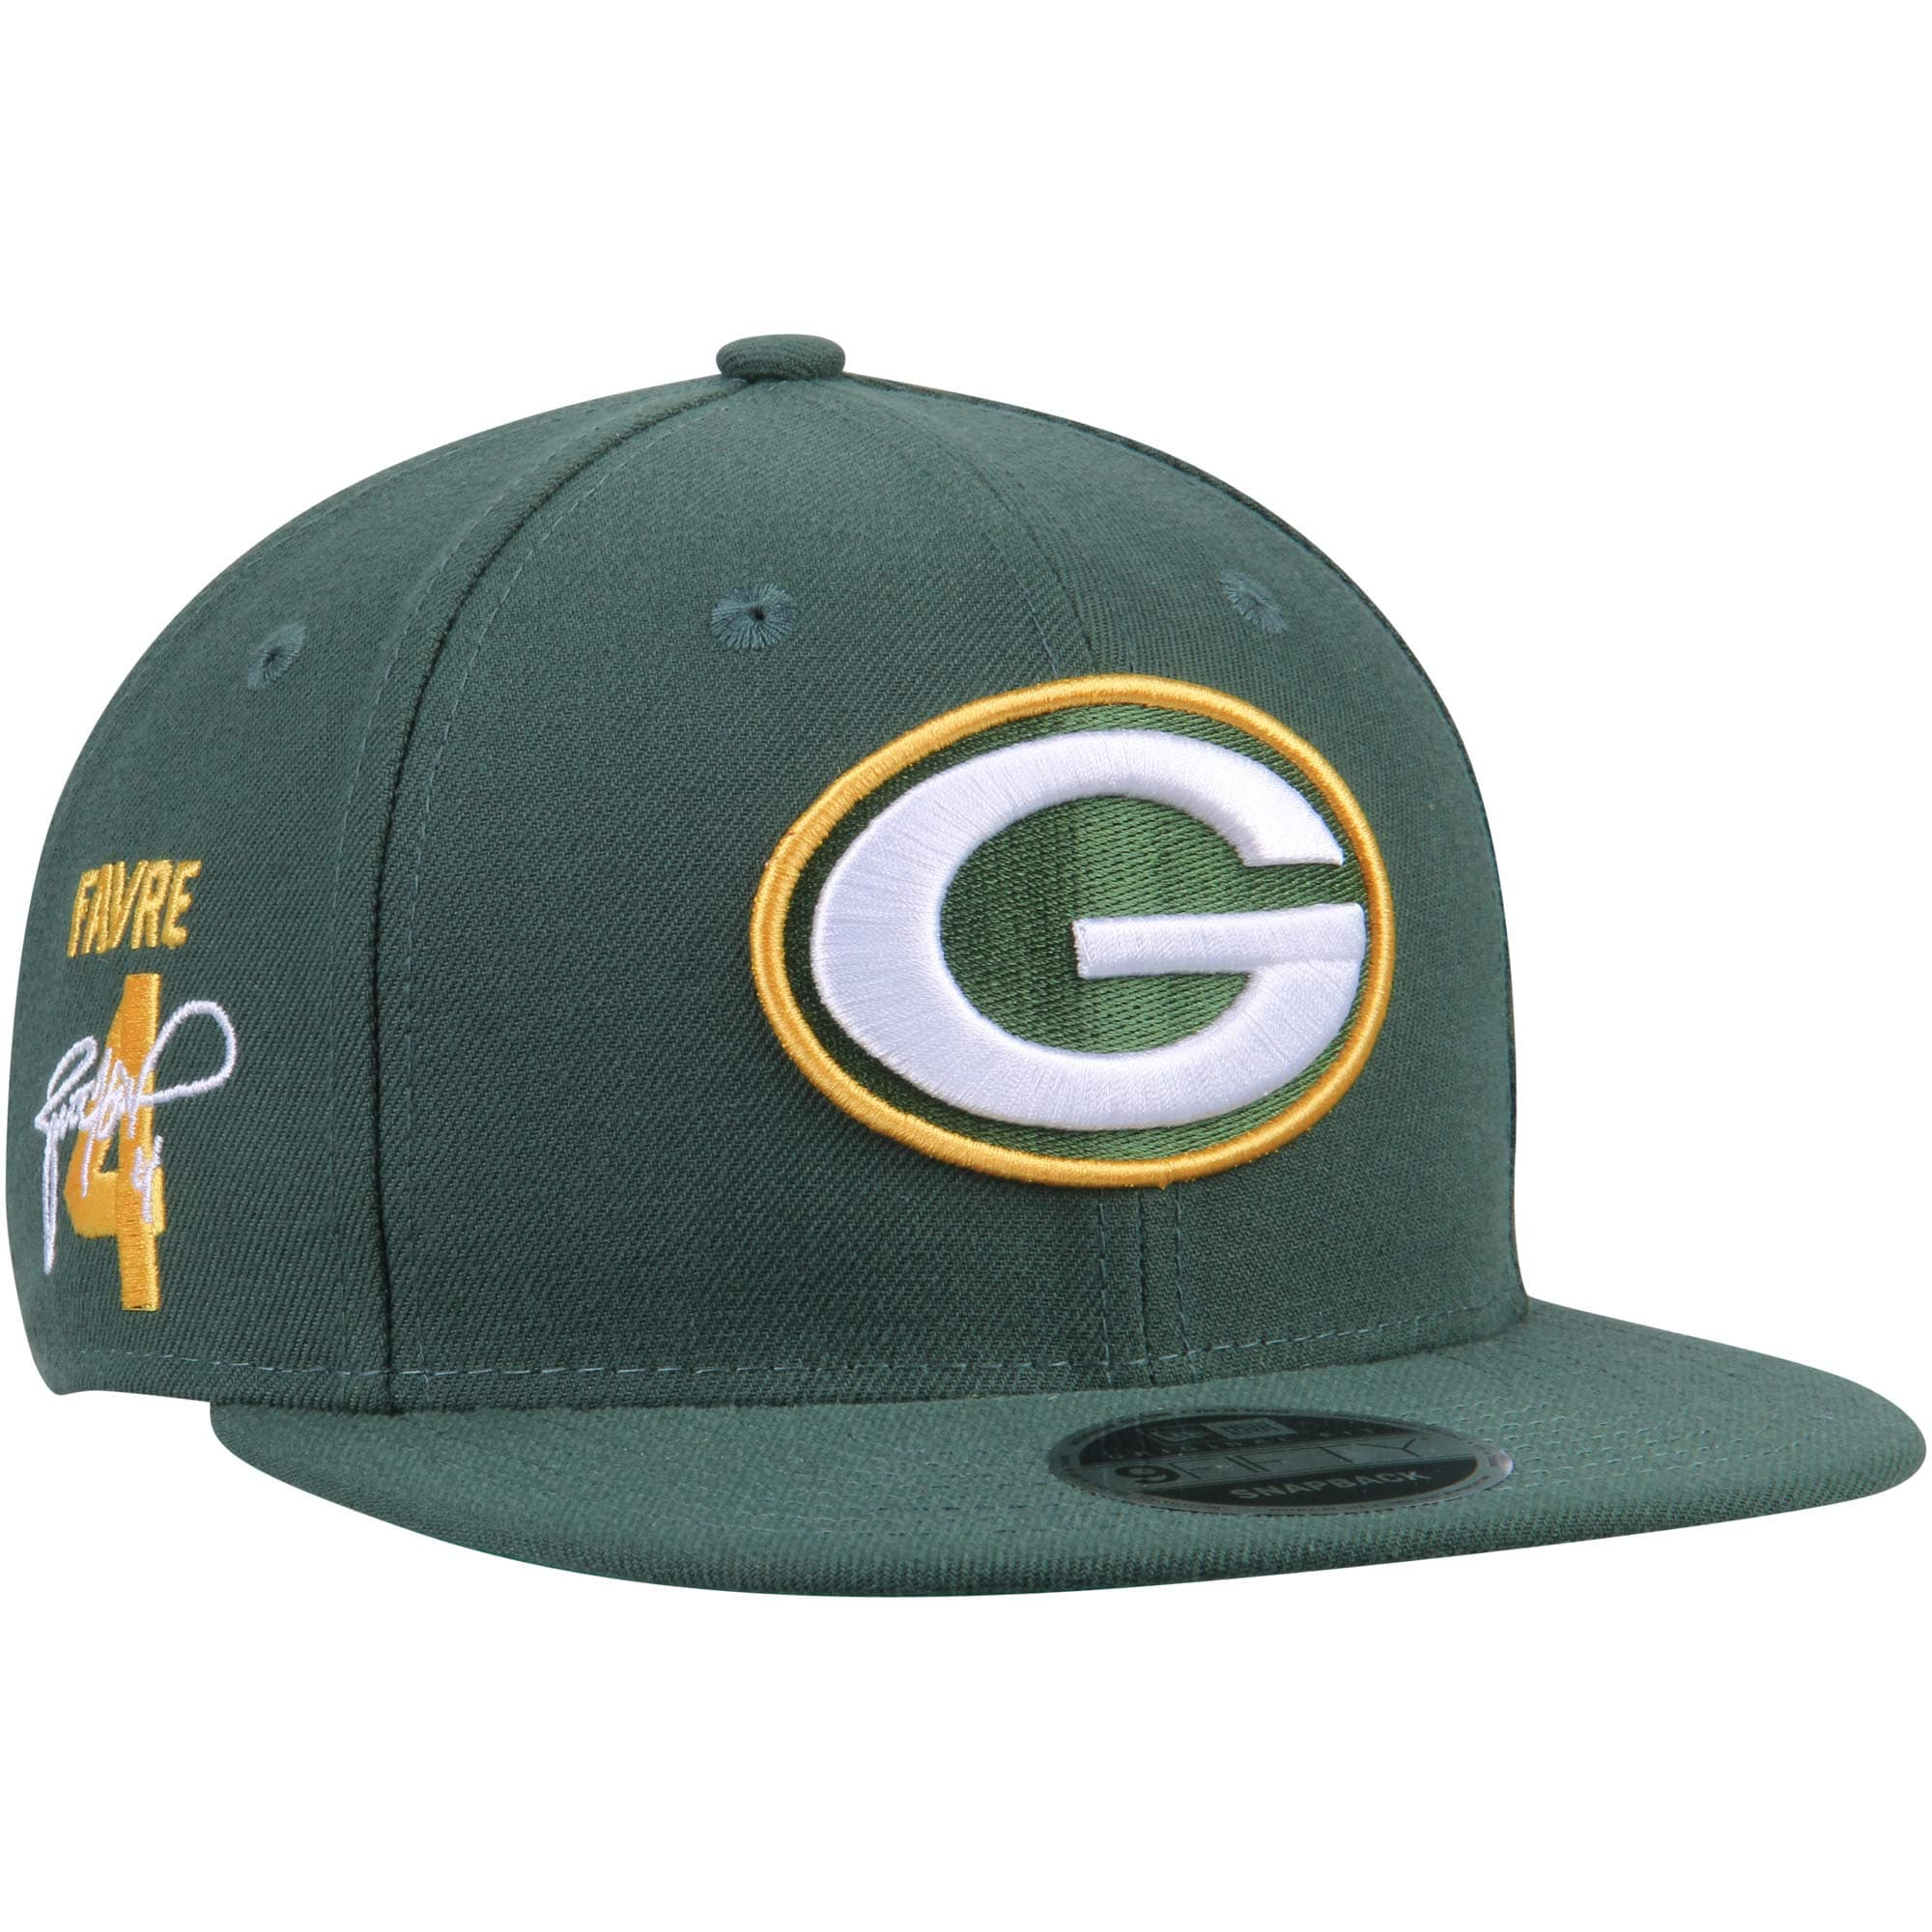 Brett Favre Green Bay Packers New Era Signature Side 9FIFTY Adjustable Snapback Hat - Green